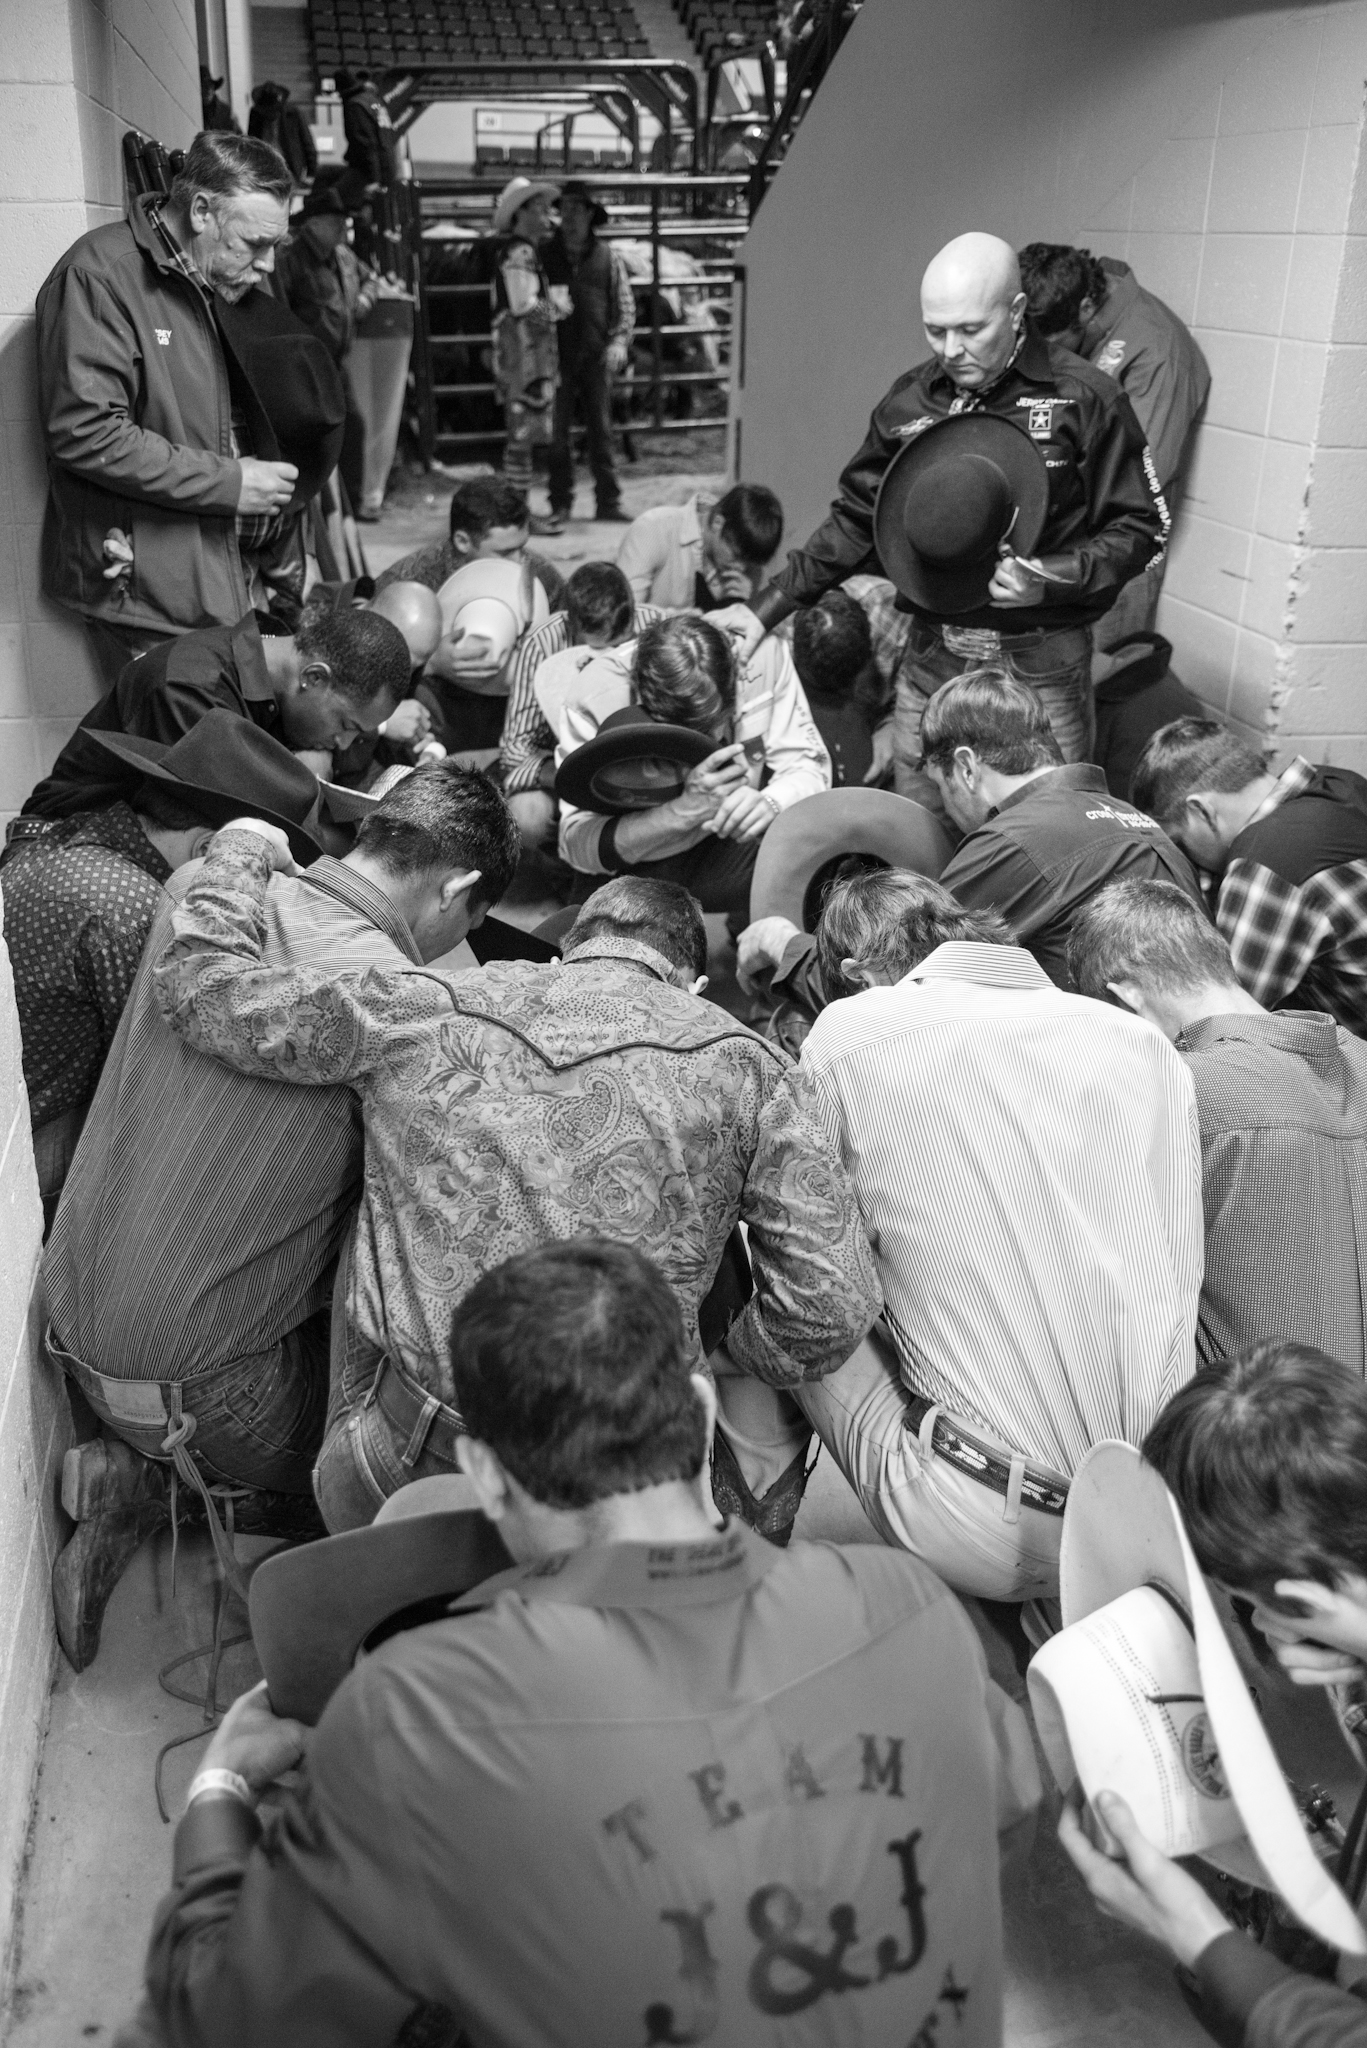 In a sport where one's life is always on the line, where so much can change in a second, bull riders are often religious men. Kneeling to pray, before and after the ride, both as groups and alone, is common.